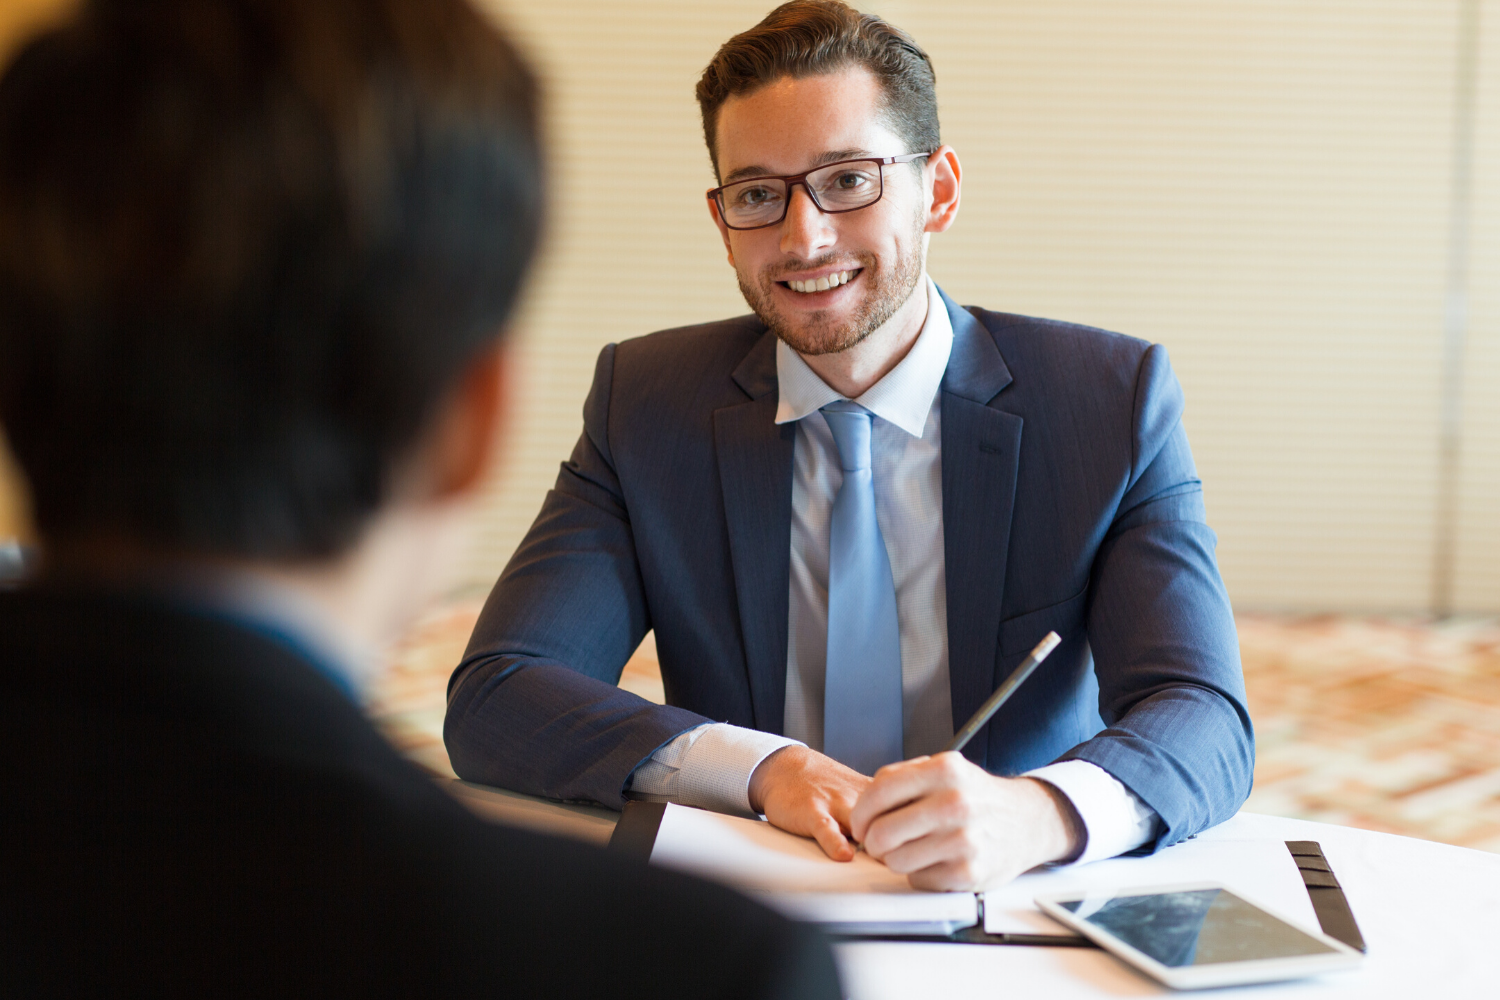 Should You Take Notes During an Interview